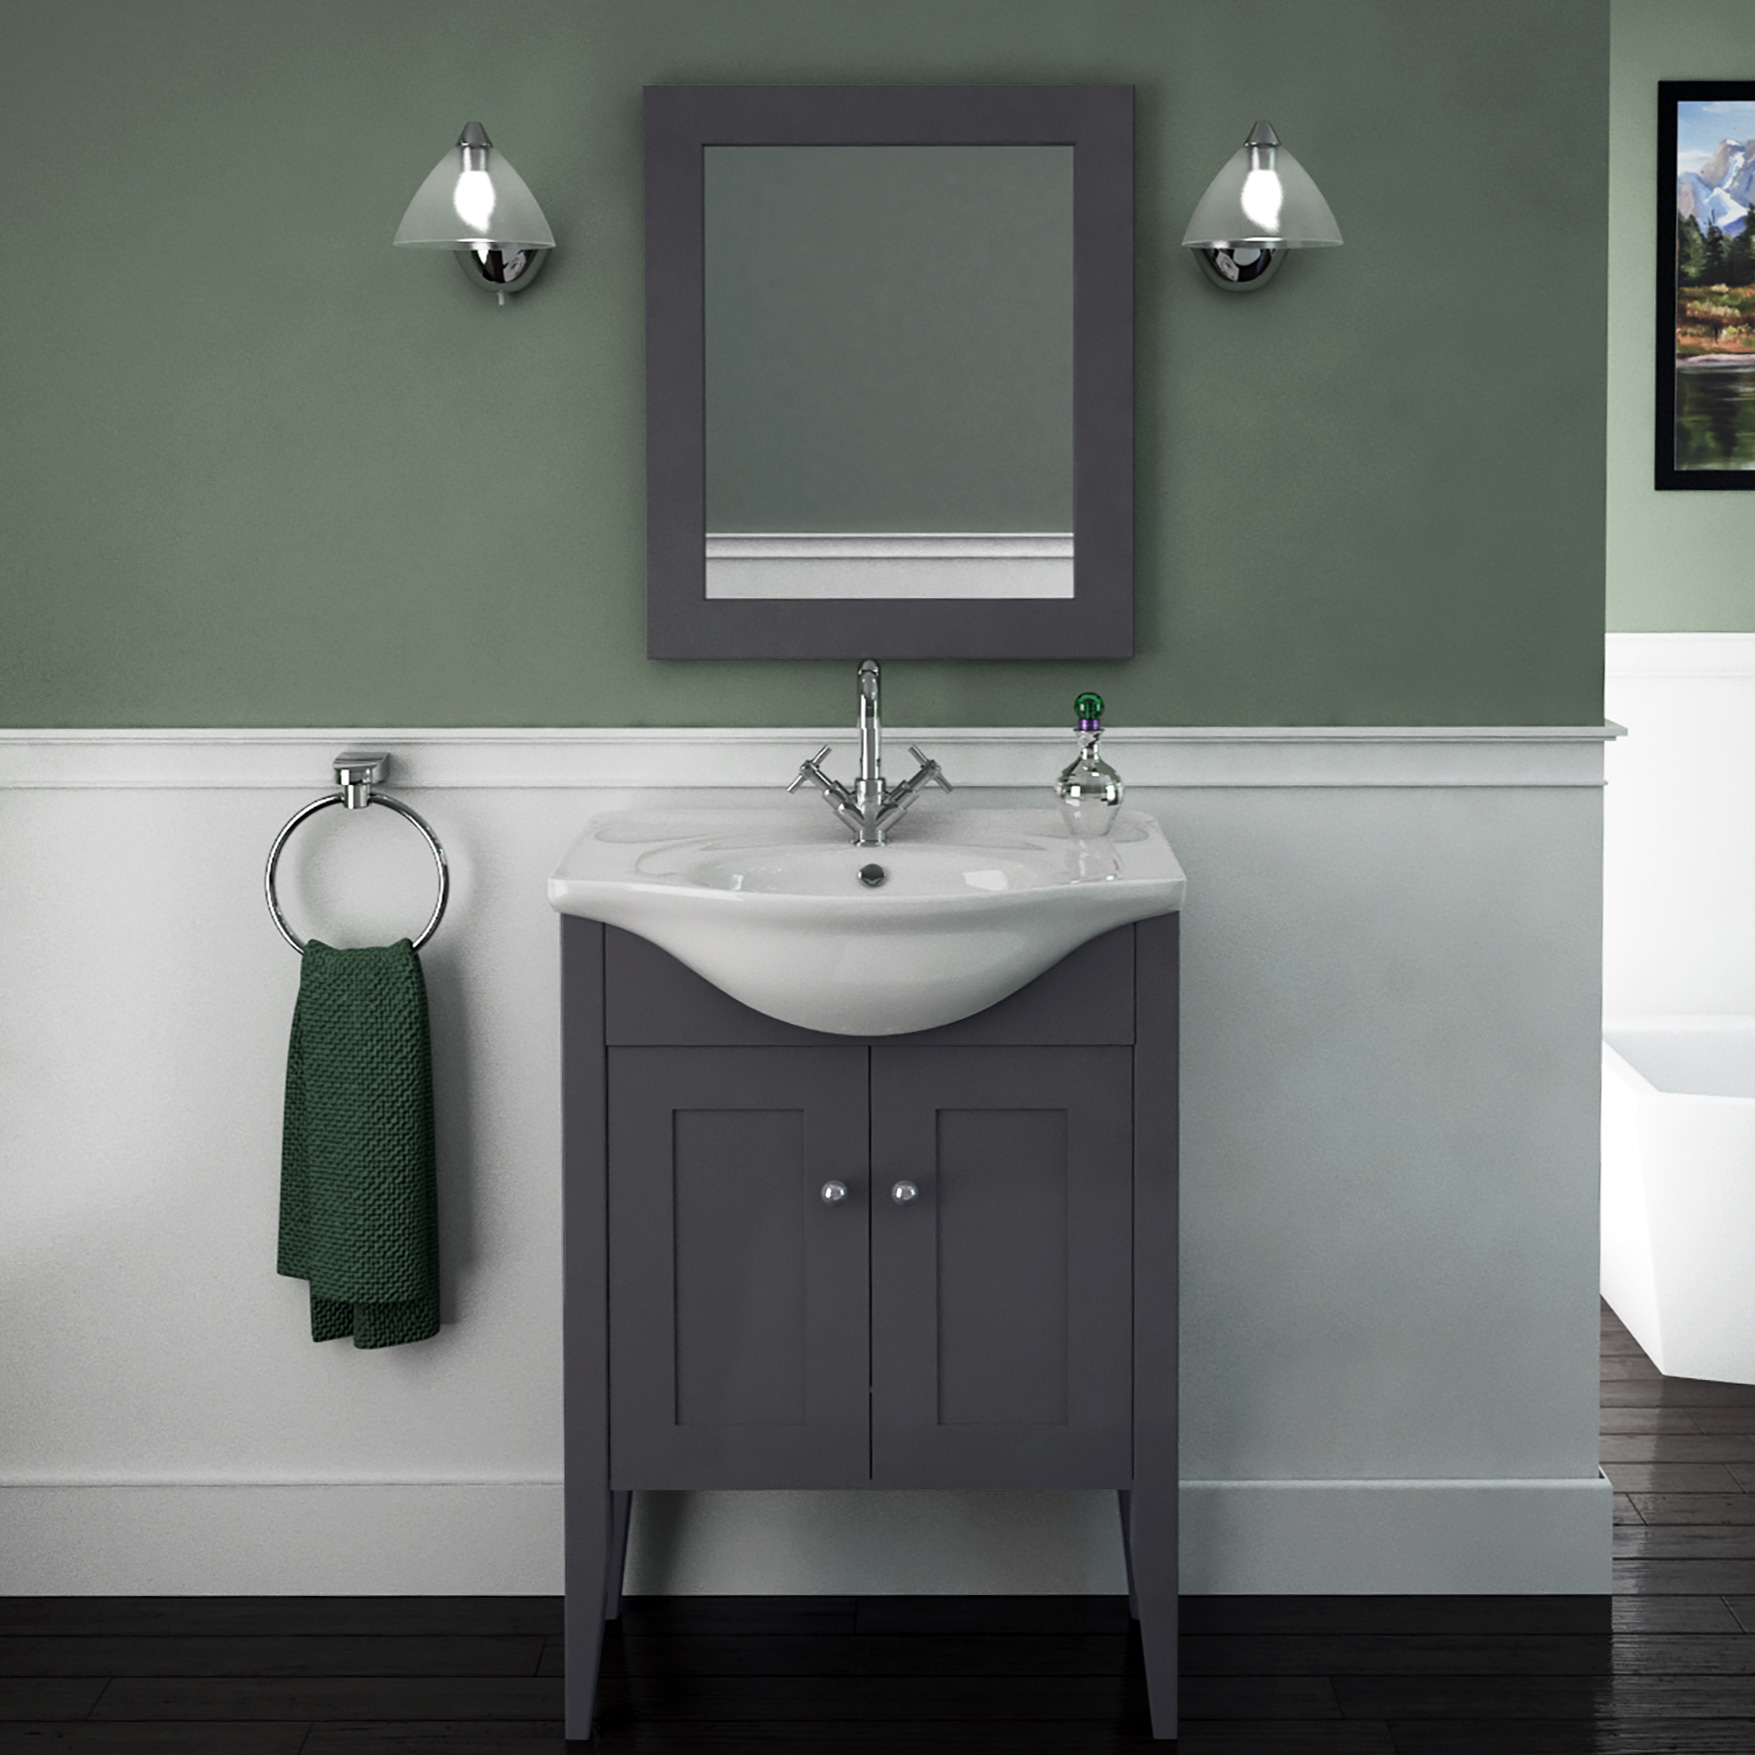 vanity unit with basin carolla vanity unit and basin (charcoal grey) buy online at bathroom city UVAABED